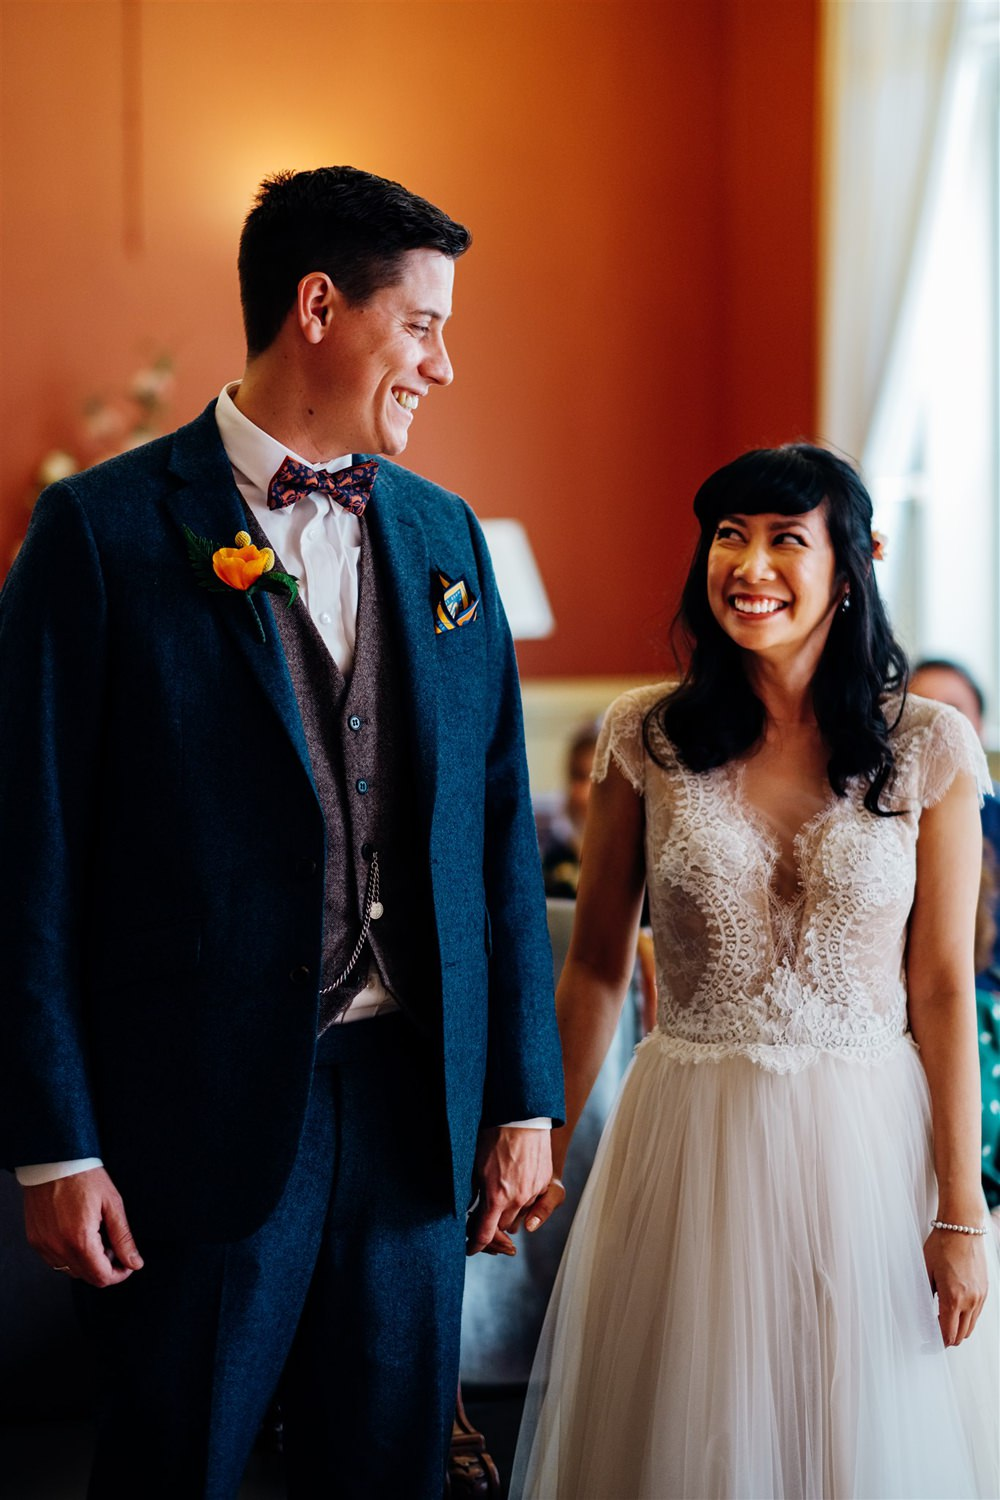 Bride Bridal Divine Atelier Dress Gown Tulle Skirt Lace Top Cap Sleeve Three Piece Suit Groom Multicoloured Paper Flower Bouquet Brighton Town Hall Wedding Marianne Chua Photography